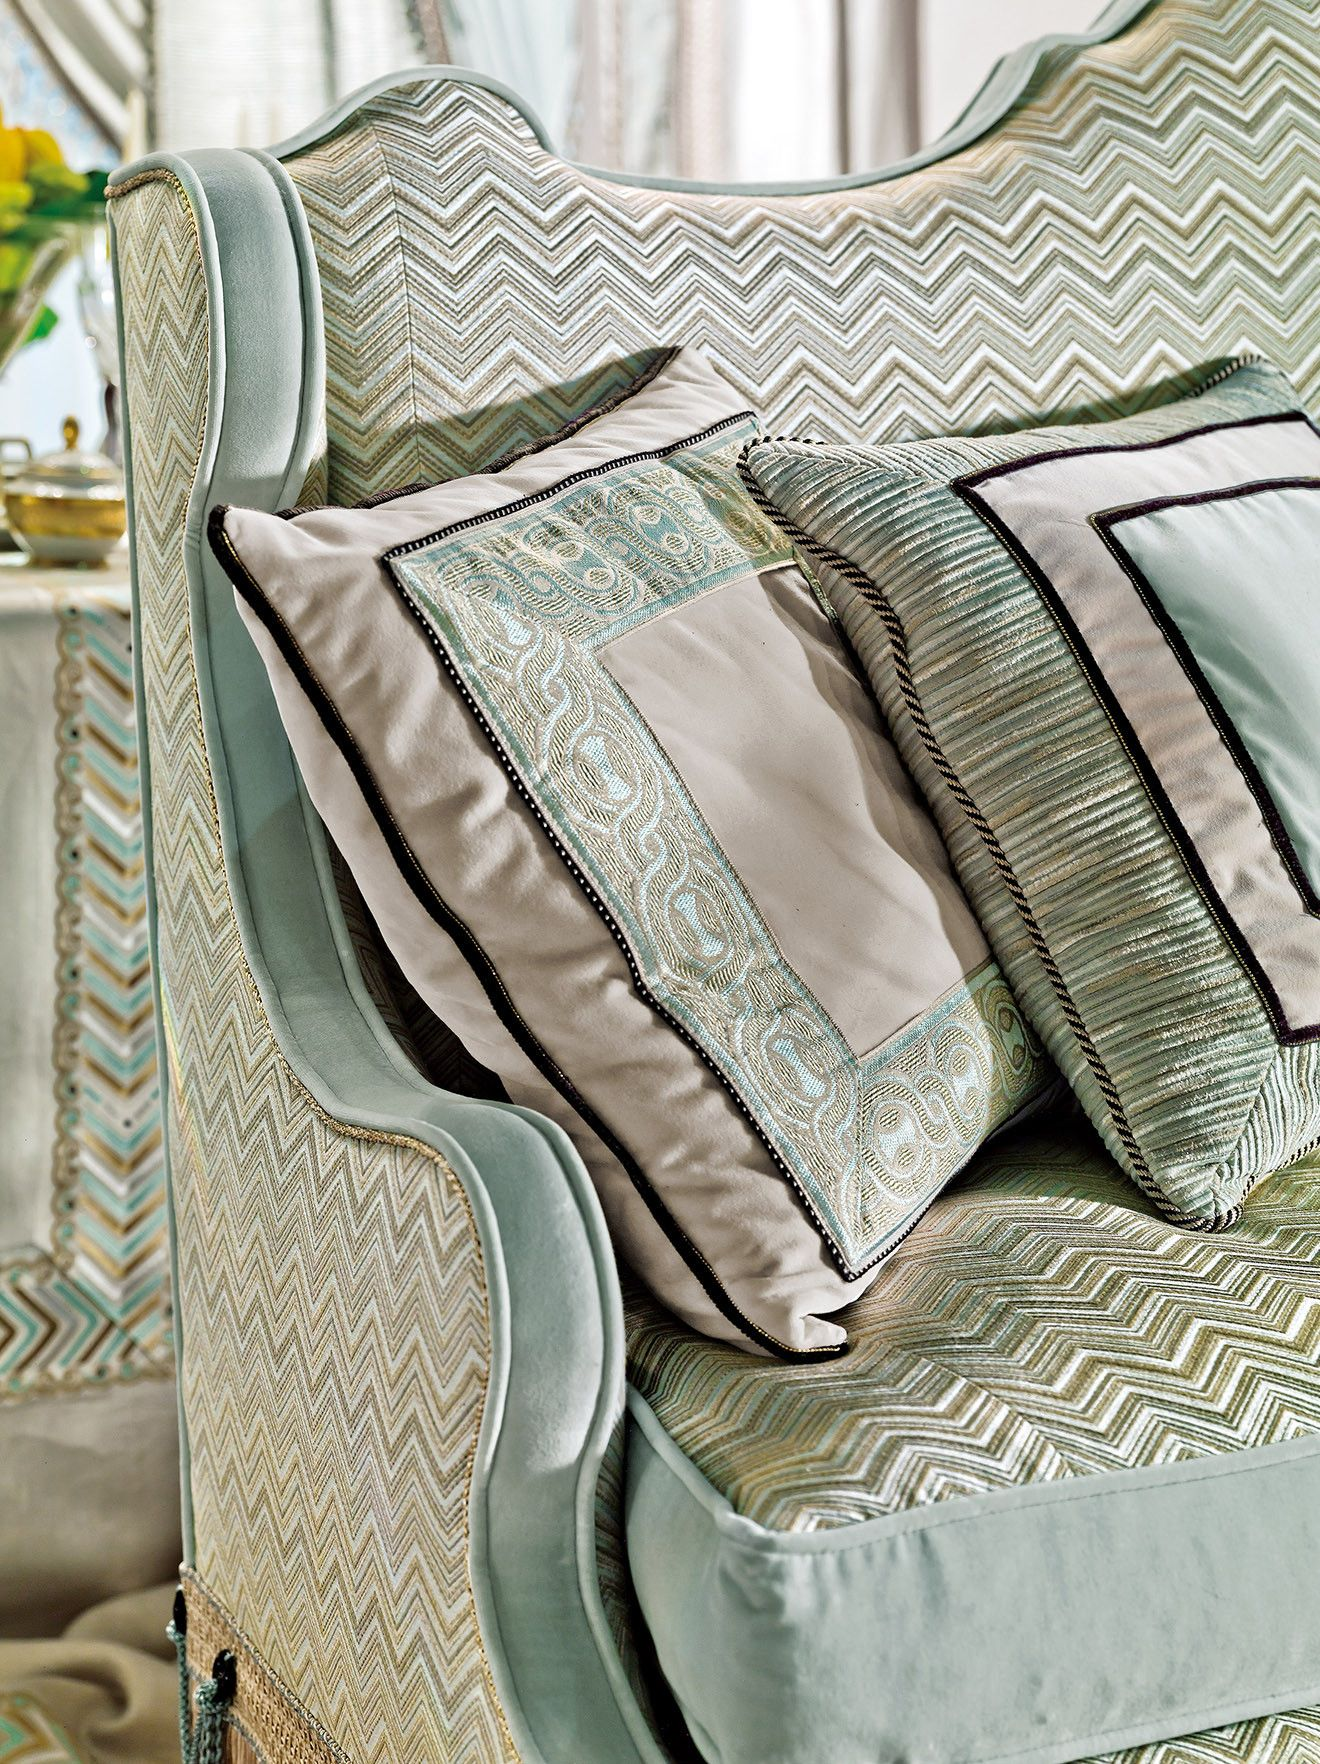 Embroidered Upholstery And Cushions From Provasi   The Beautiful Italian  Furniture Designs Of Provasi, Combining